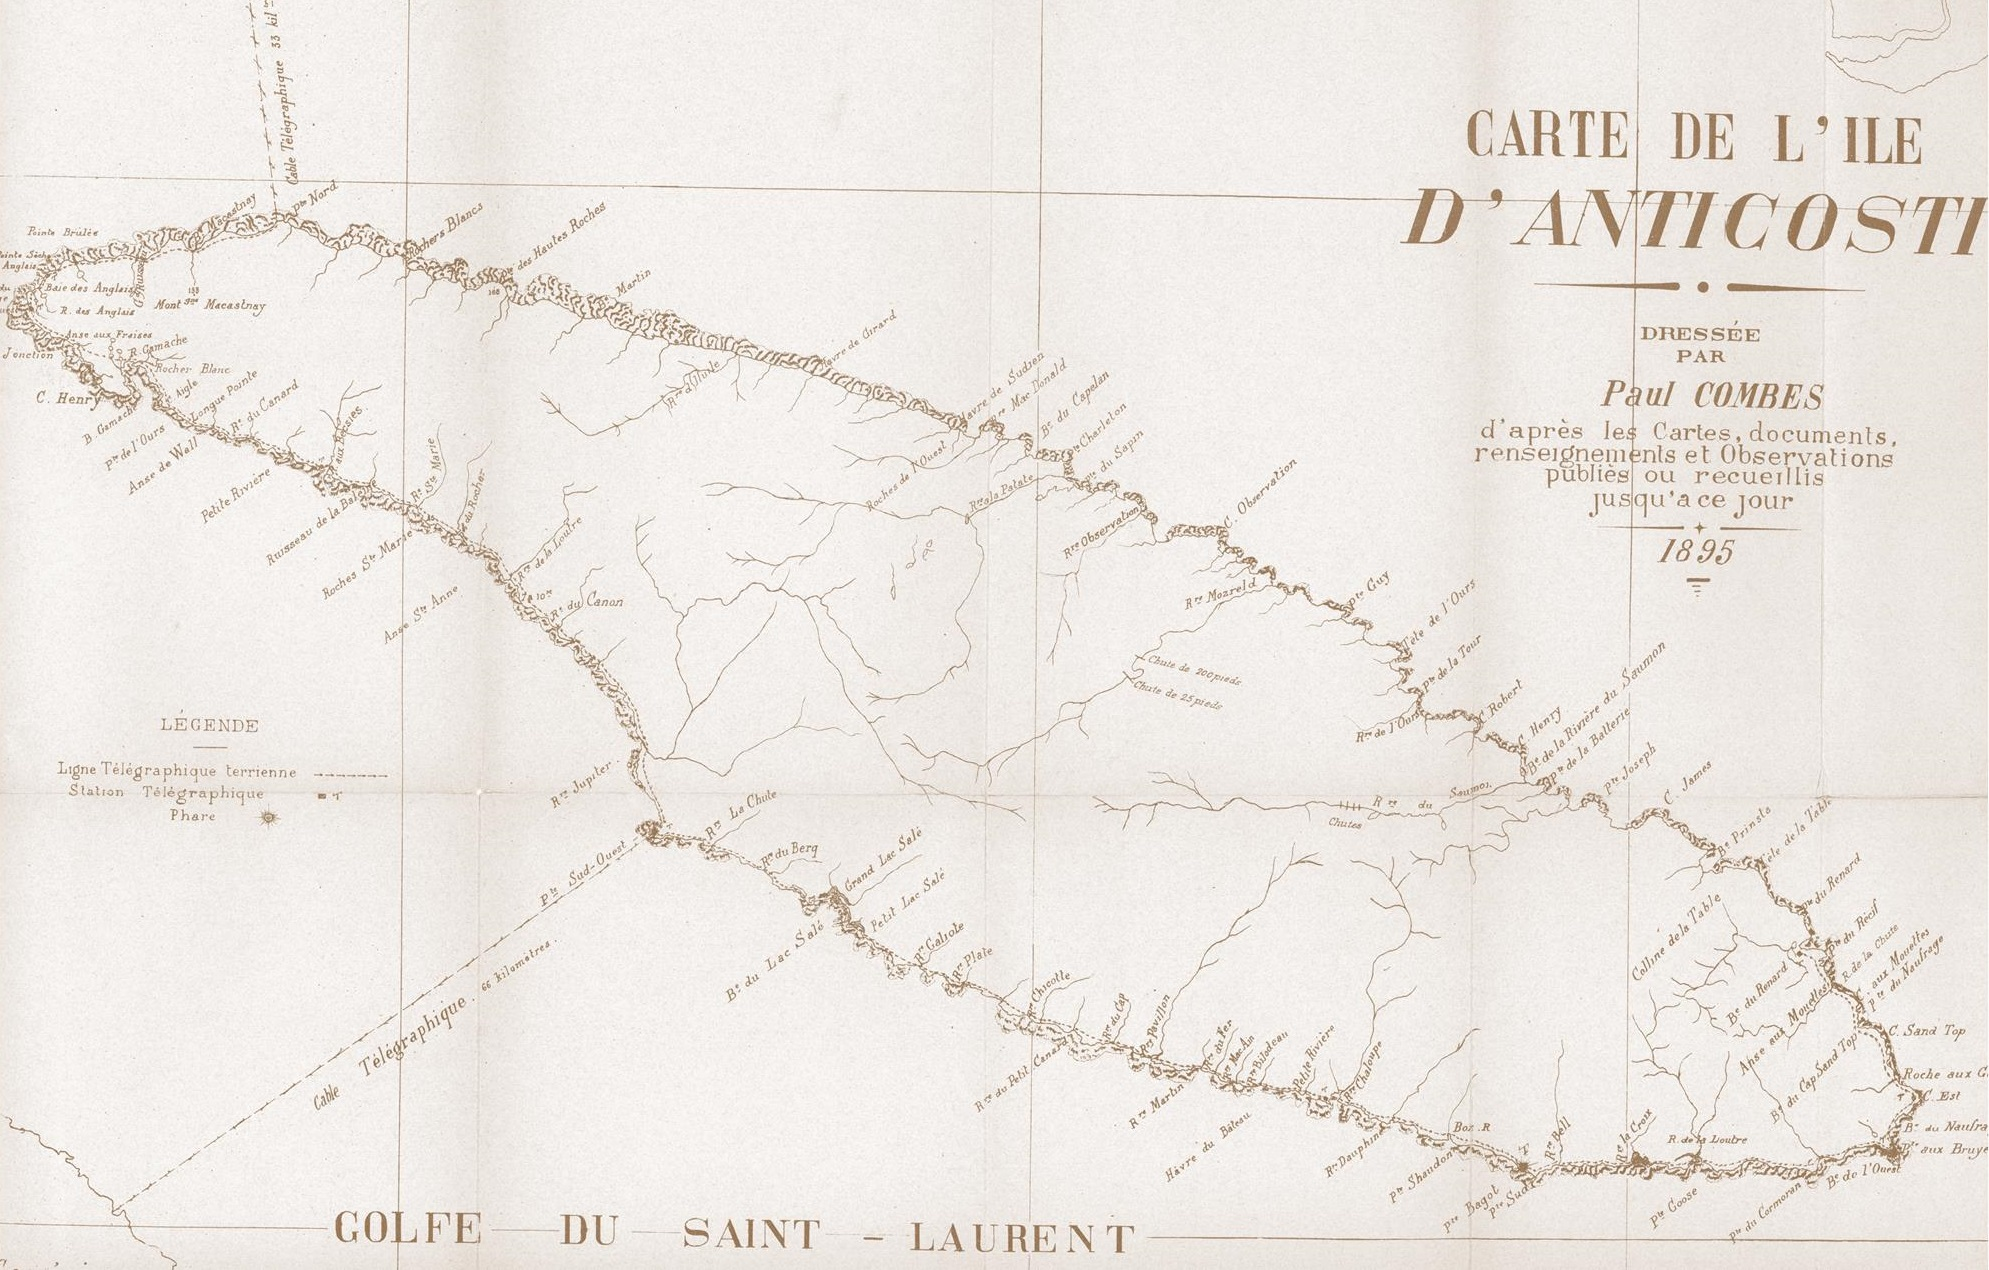 [Carte d'Anticosti de Paul COMBES, 1895]